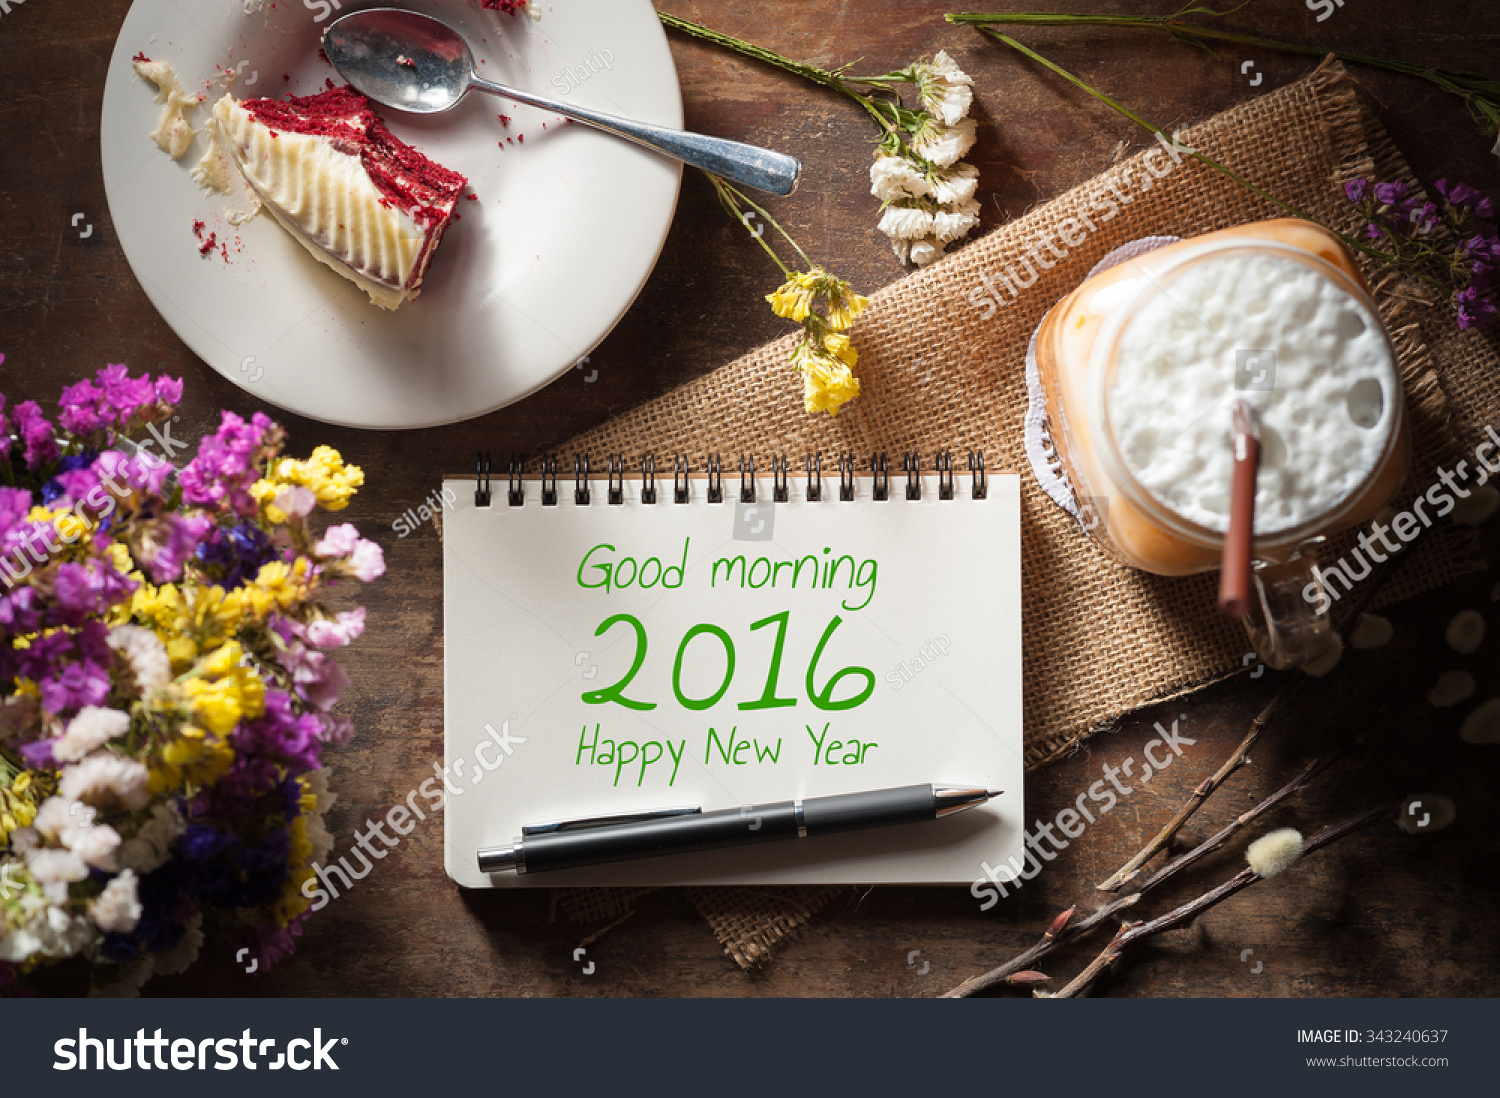 Good Morning 2016 Happy New Year Stock Photo Edit Now 343240637